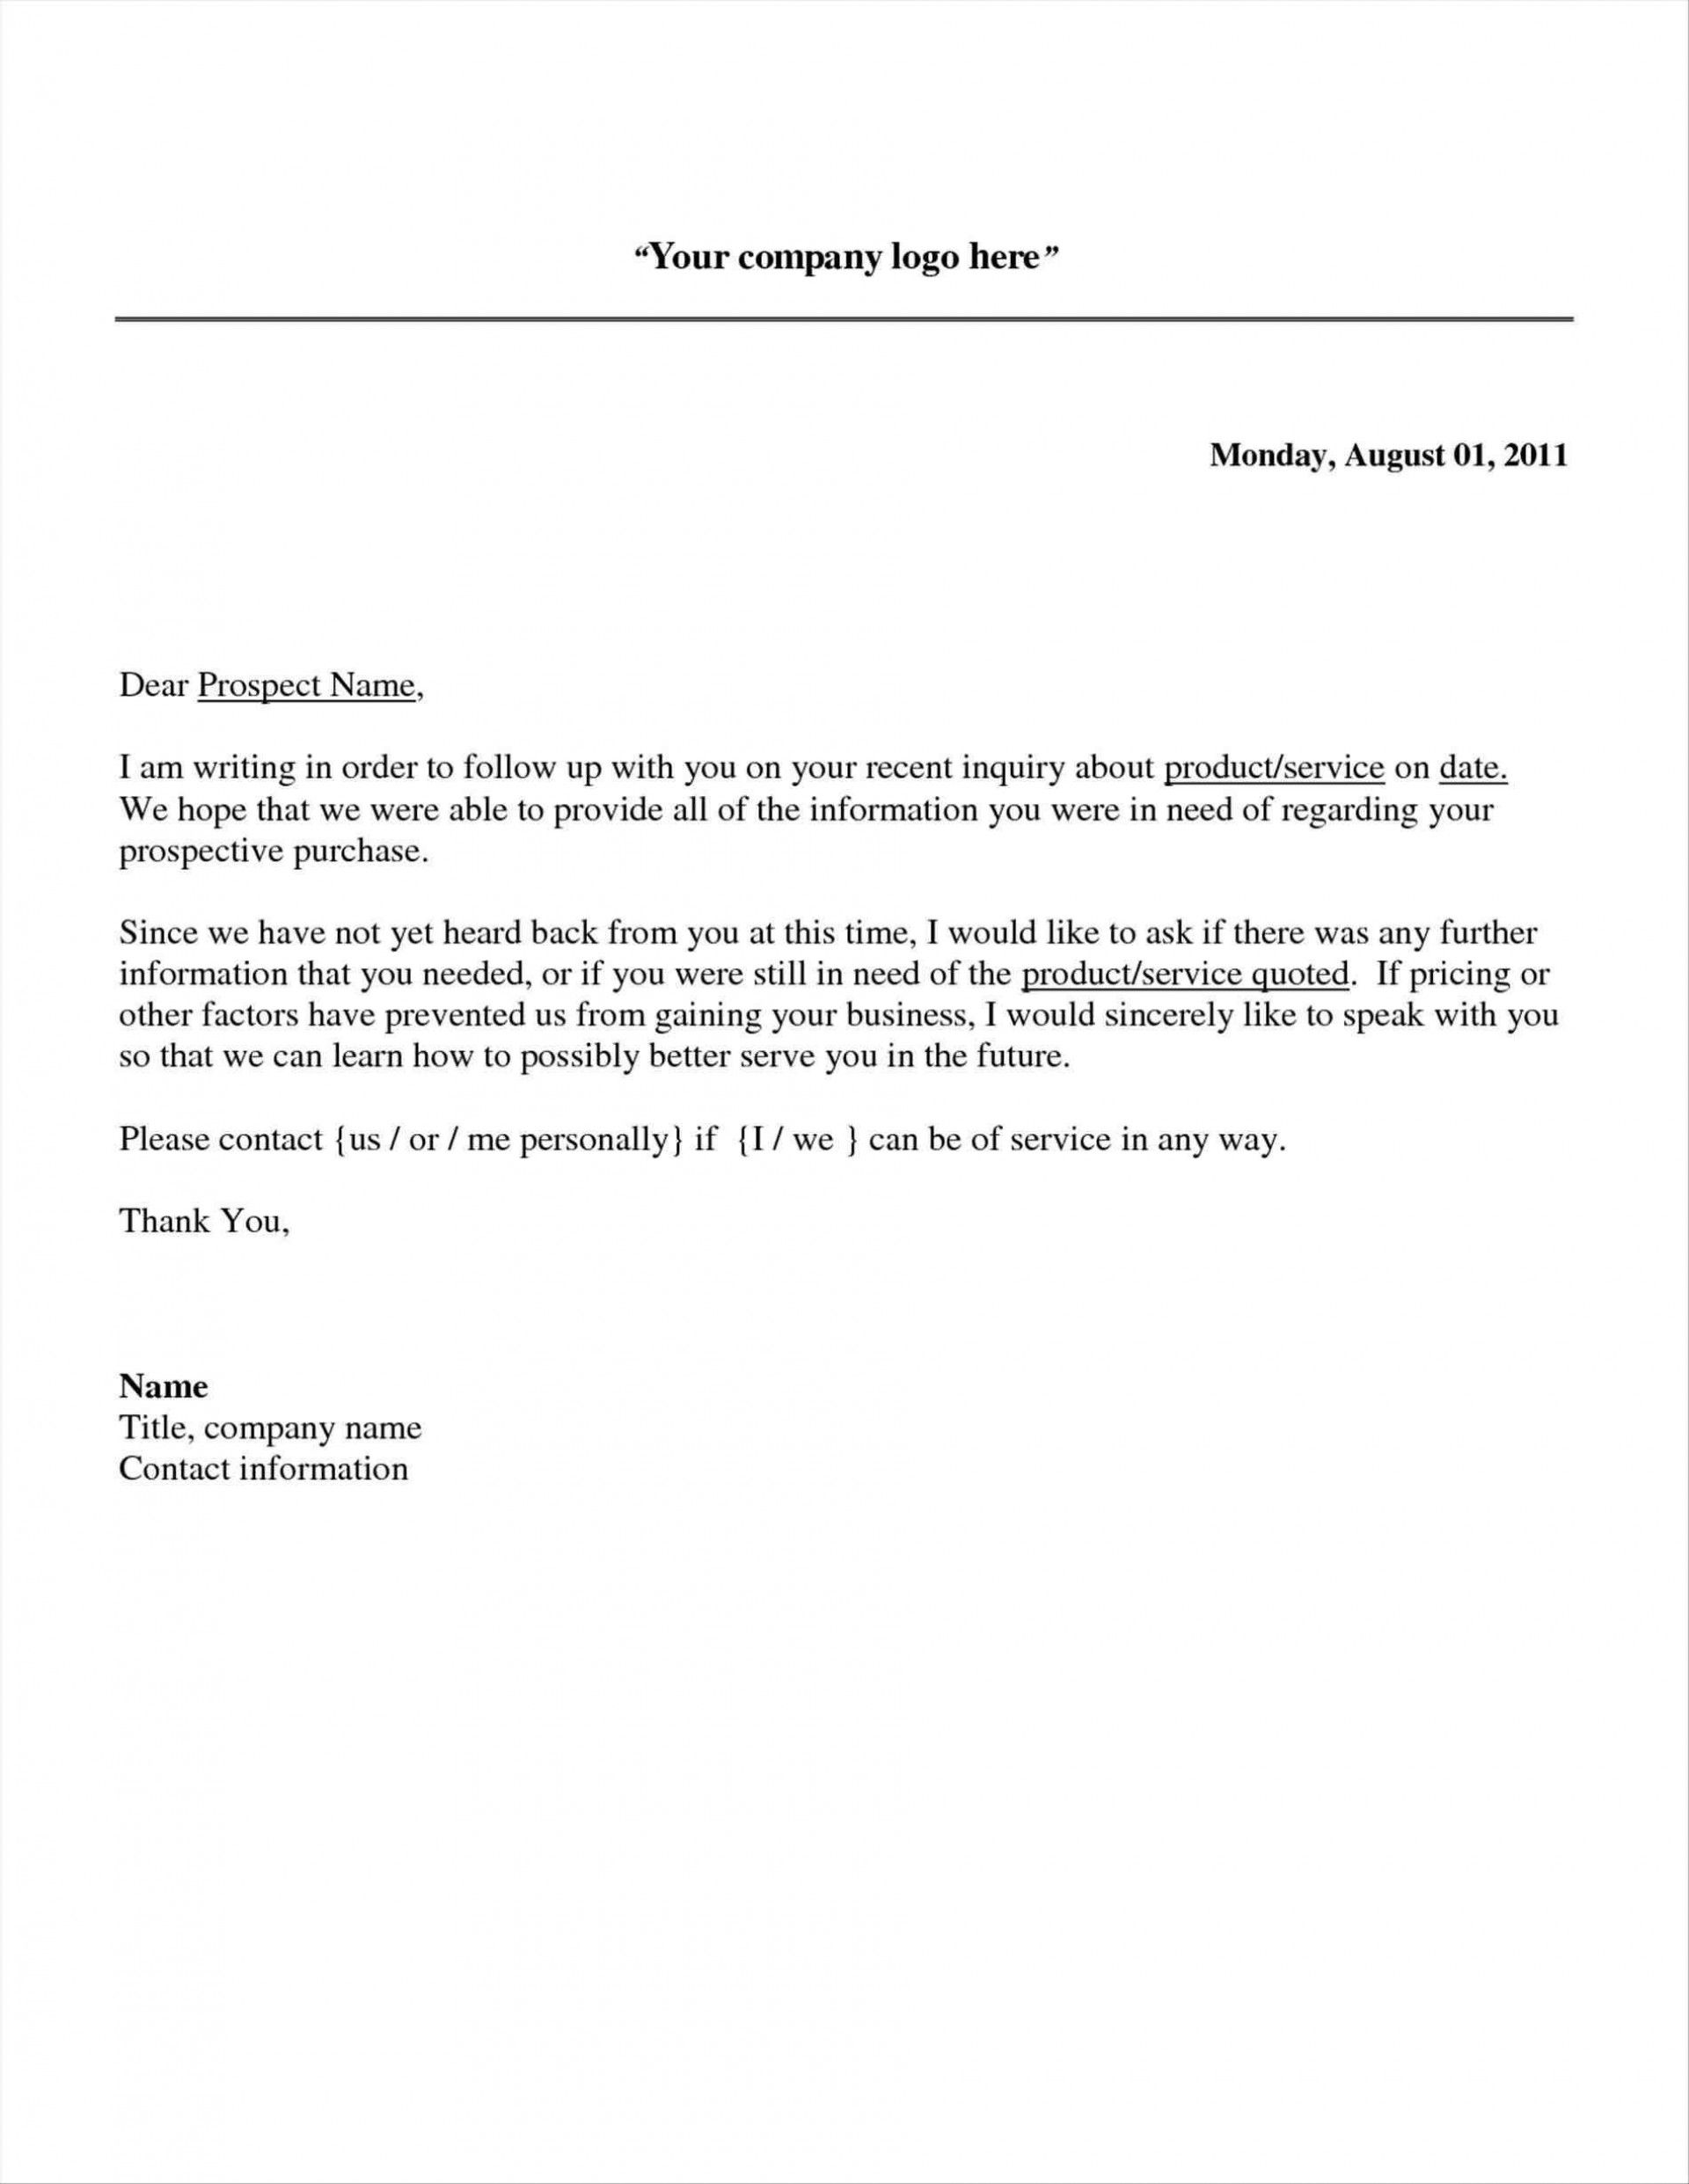 003 Frightening Follow Up Email Template After No Response High Definition Full